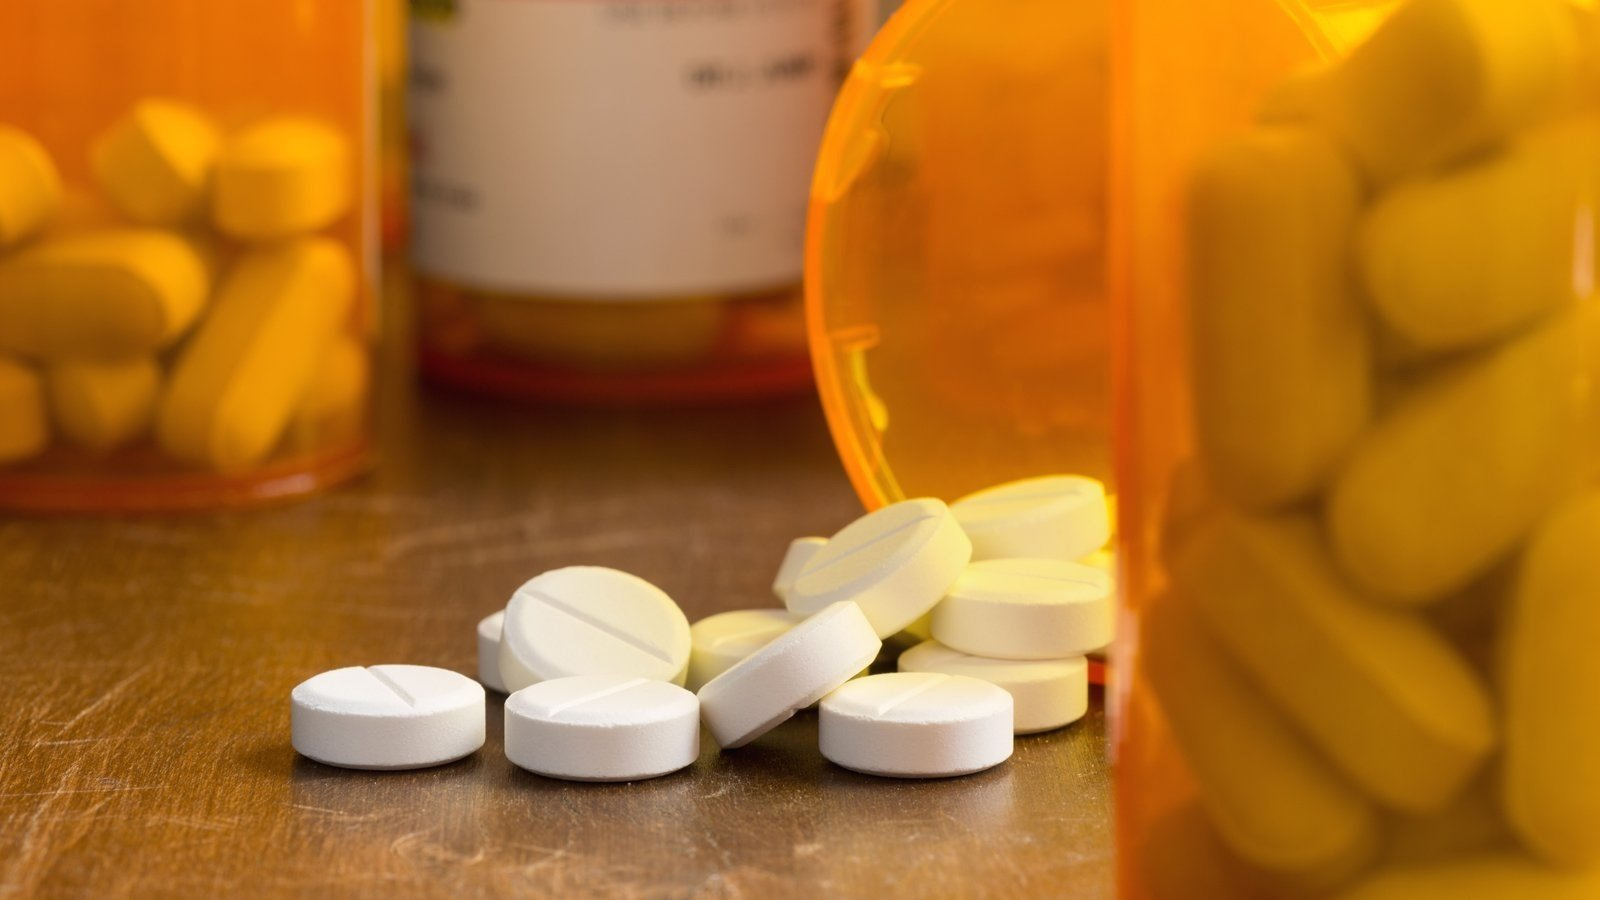 FDA: Prescription Opioid Cough/Cold Meds No Longer Indicated for Children